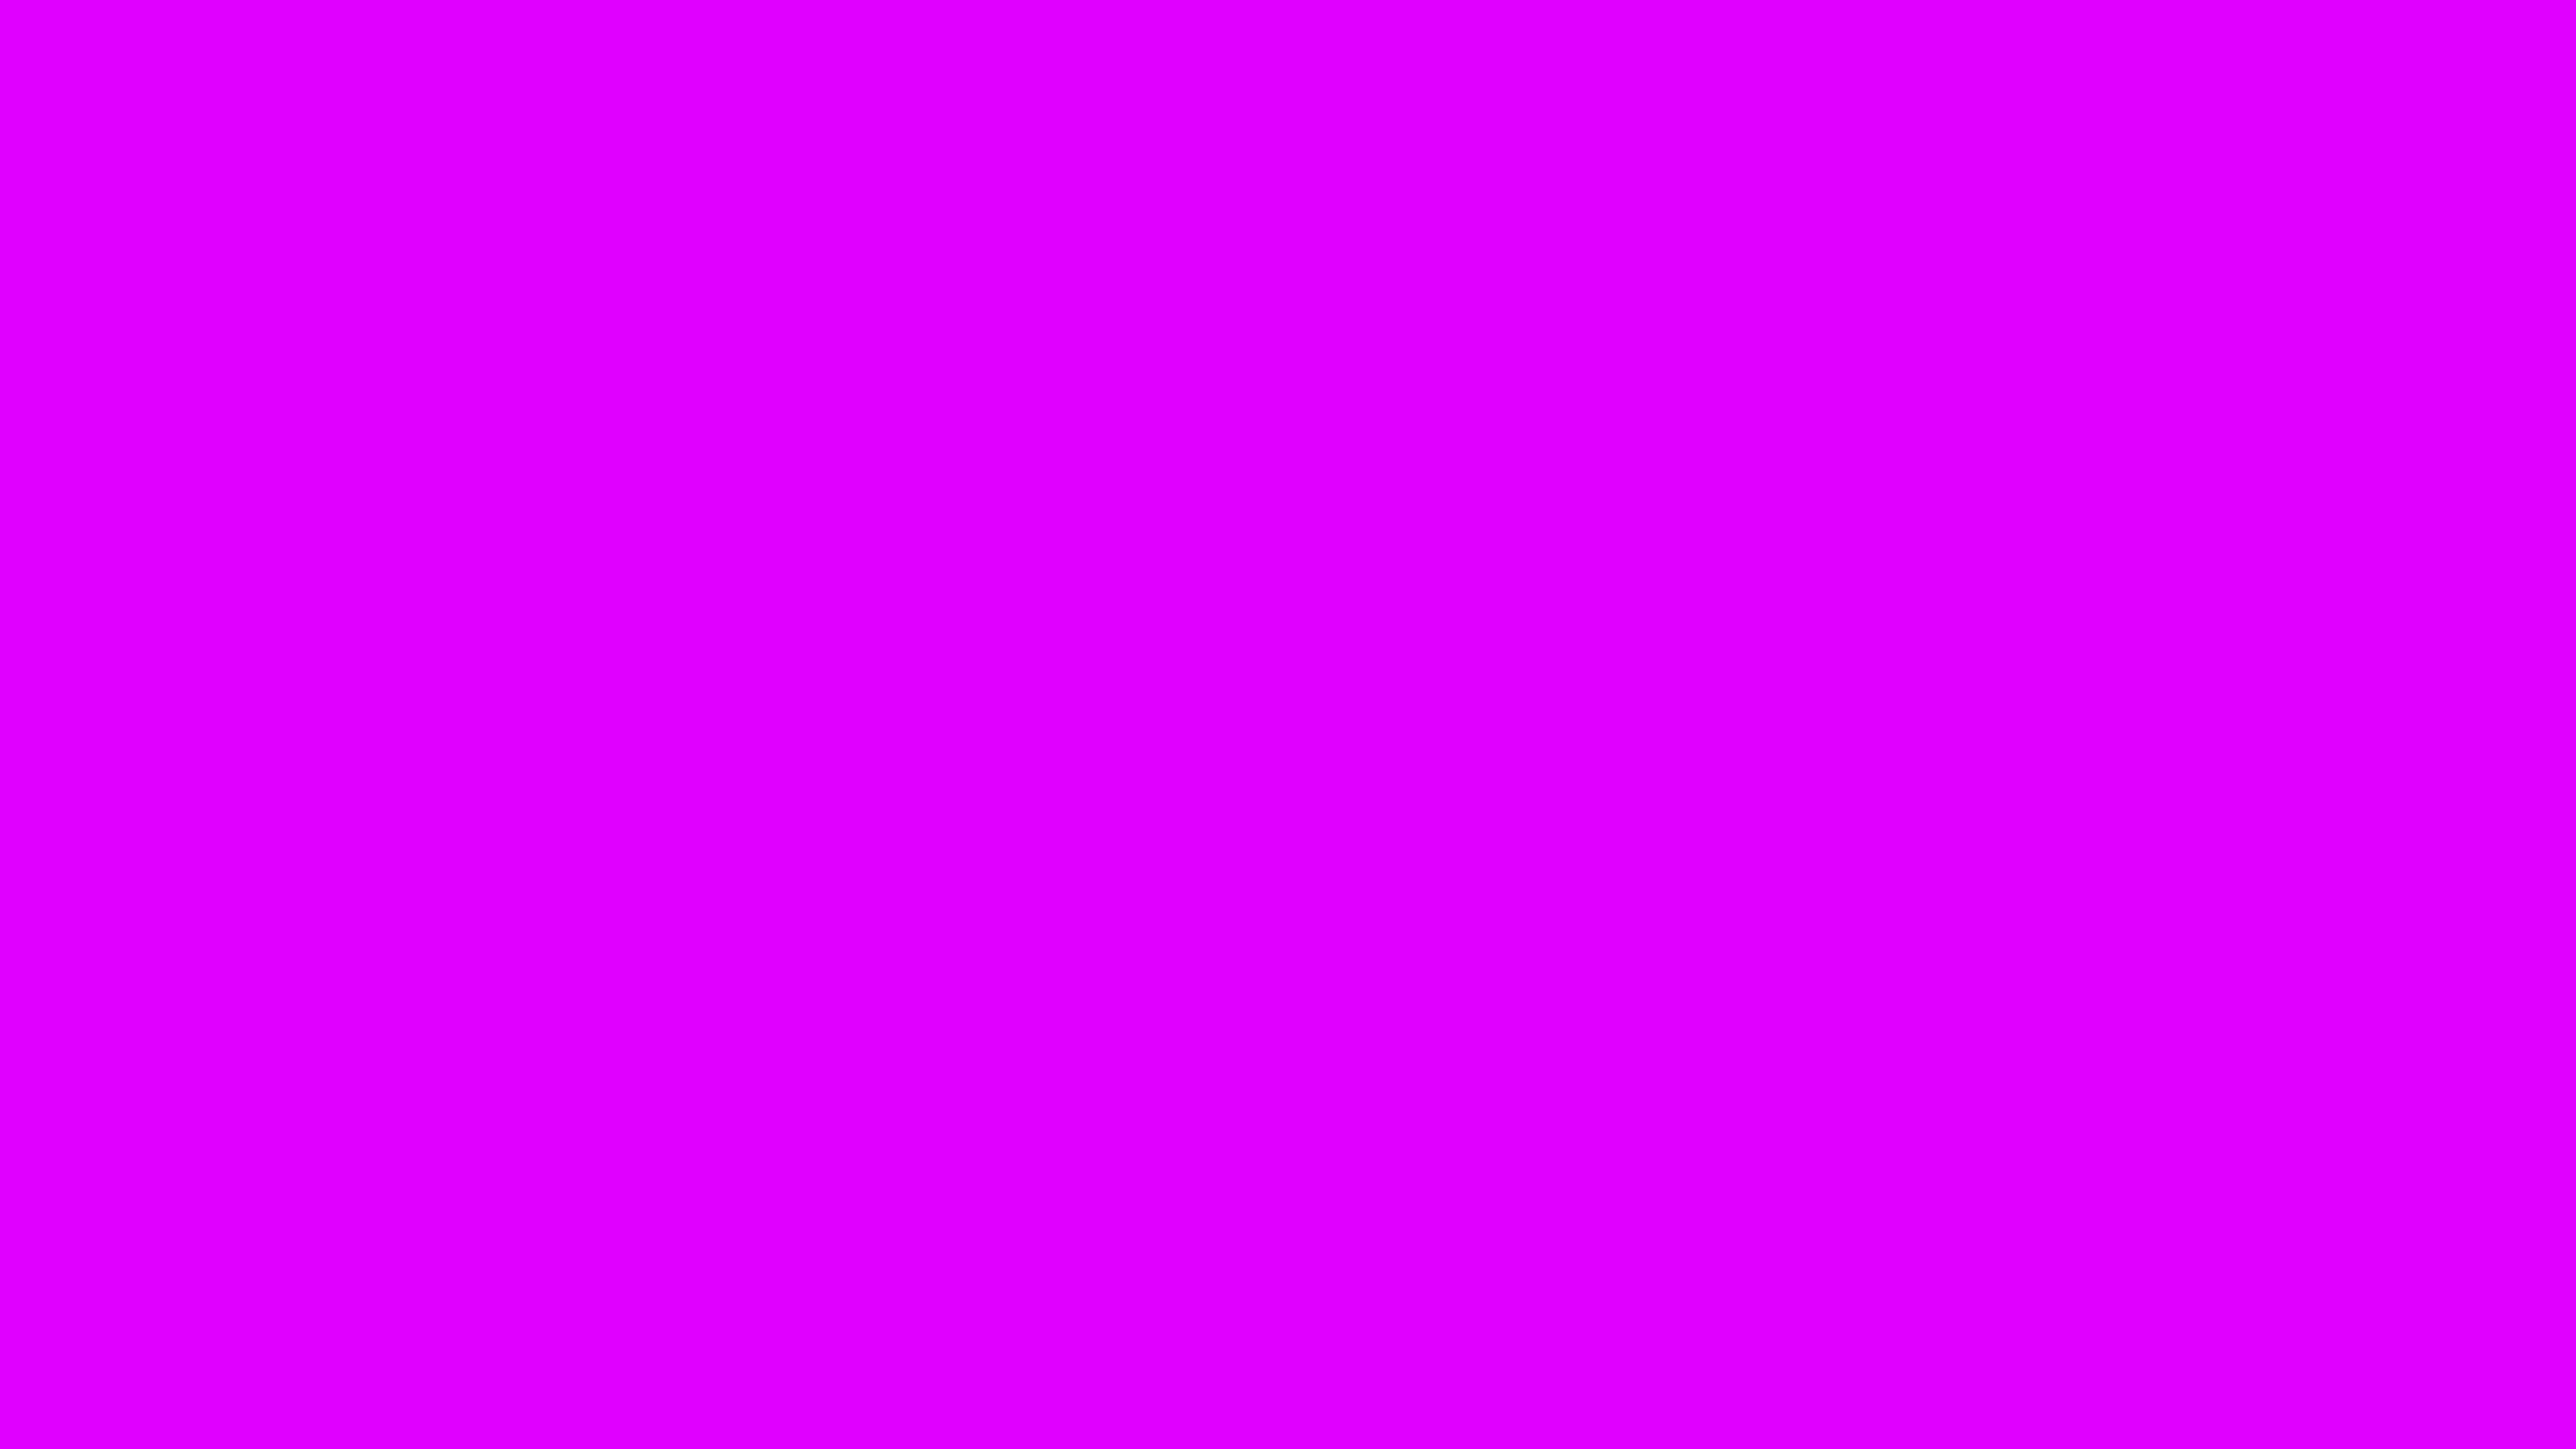 3840x2160 Phlox Solid Color Background